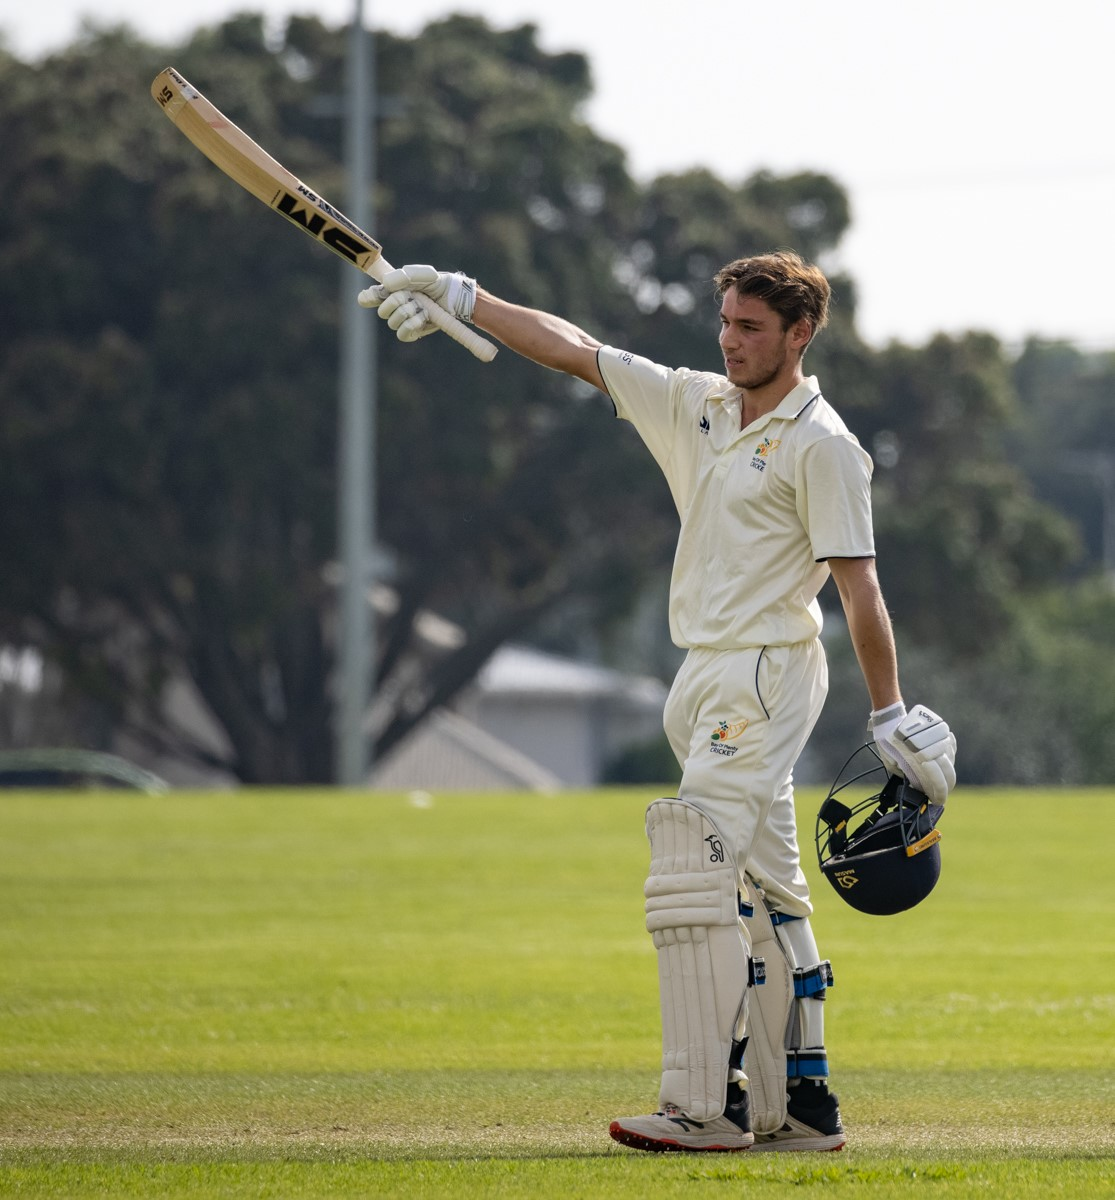 Taylor Bettelheim Wins Bay of Plenty Cricket Player of the Year